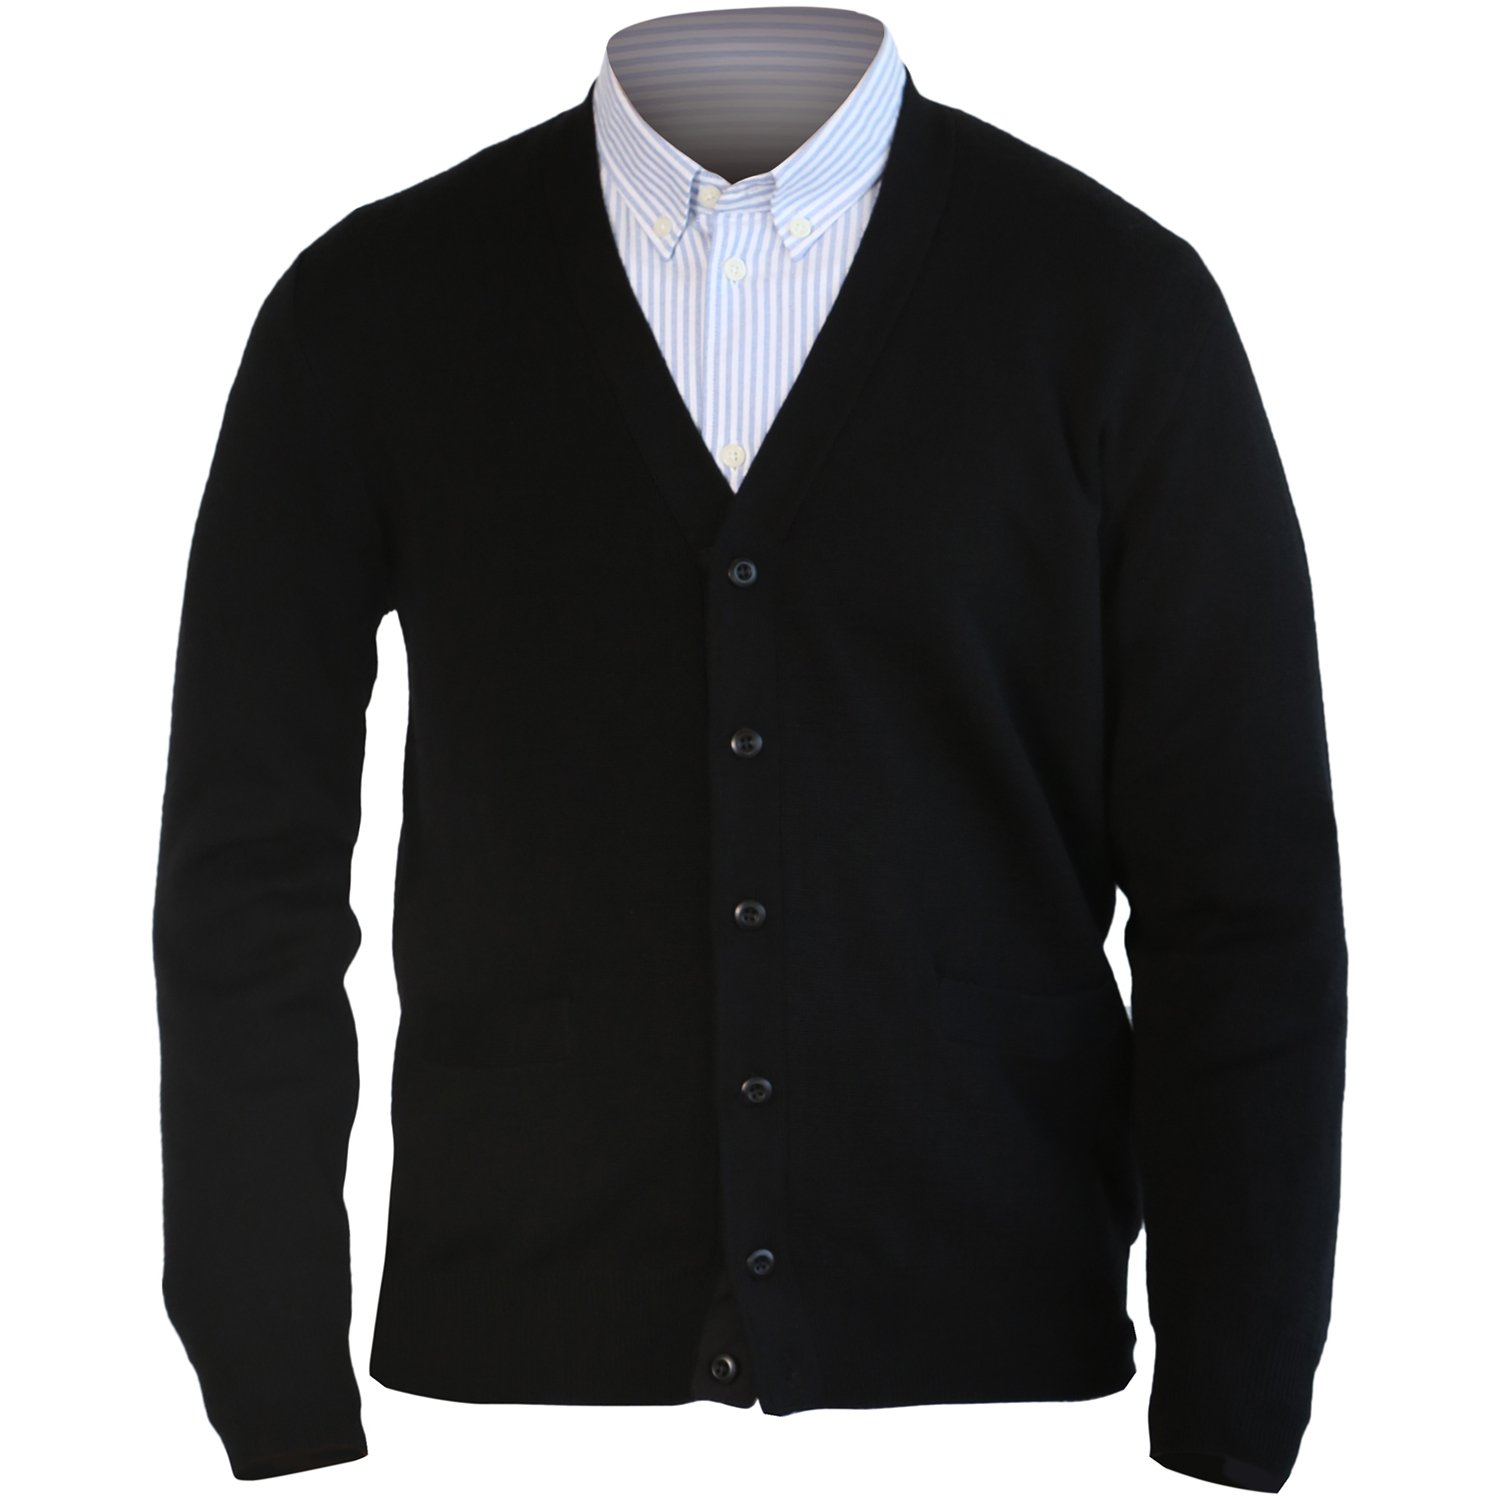 MARMO DI CARRARA Mens 100% Merino Wool Cardigan Sweater Black Knitted Classic Fit Button UP